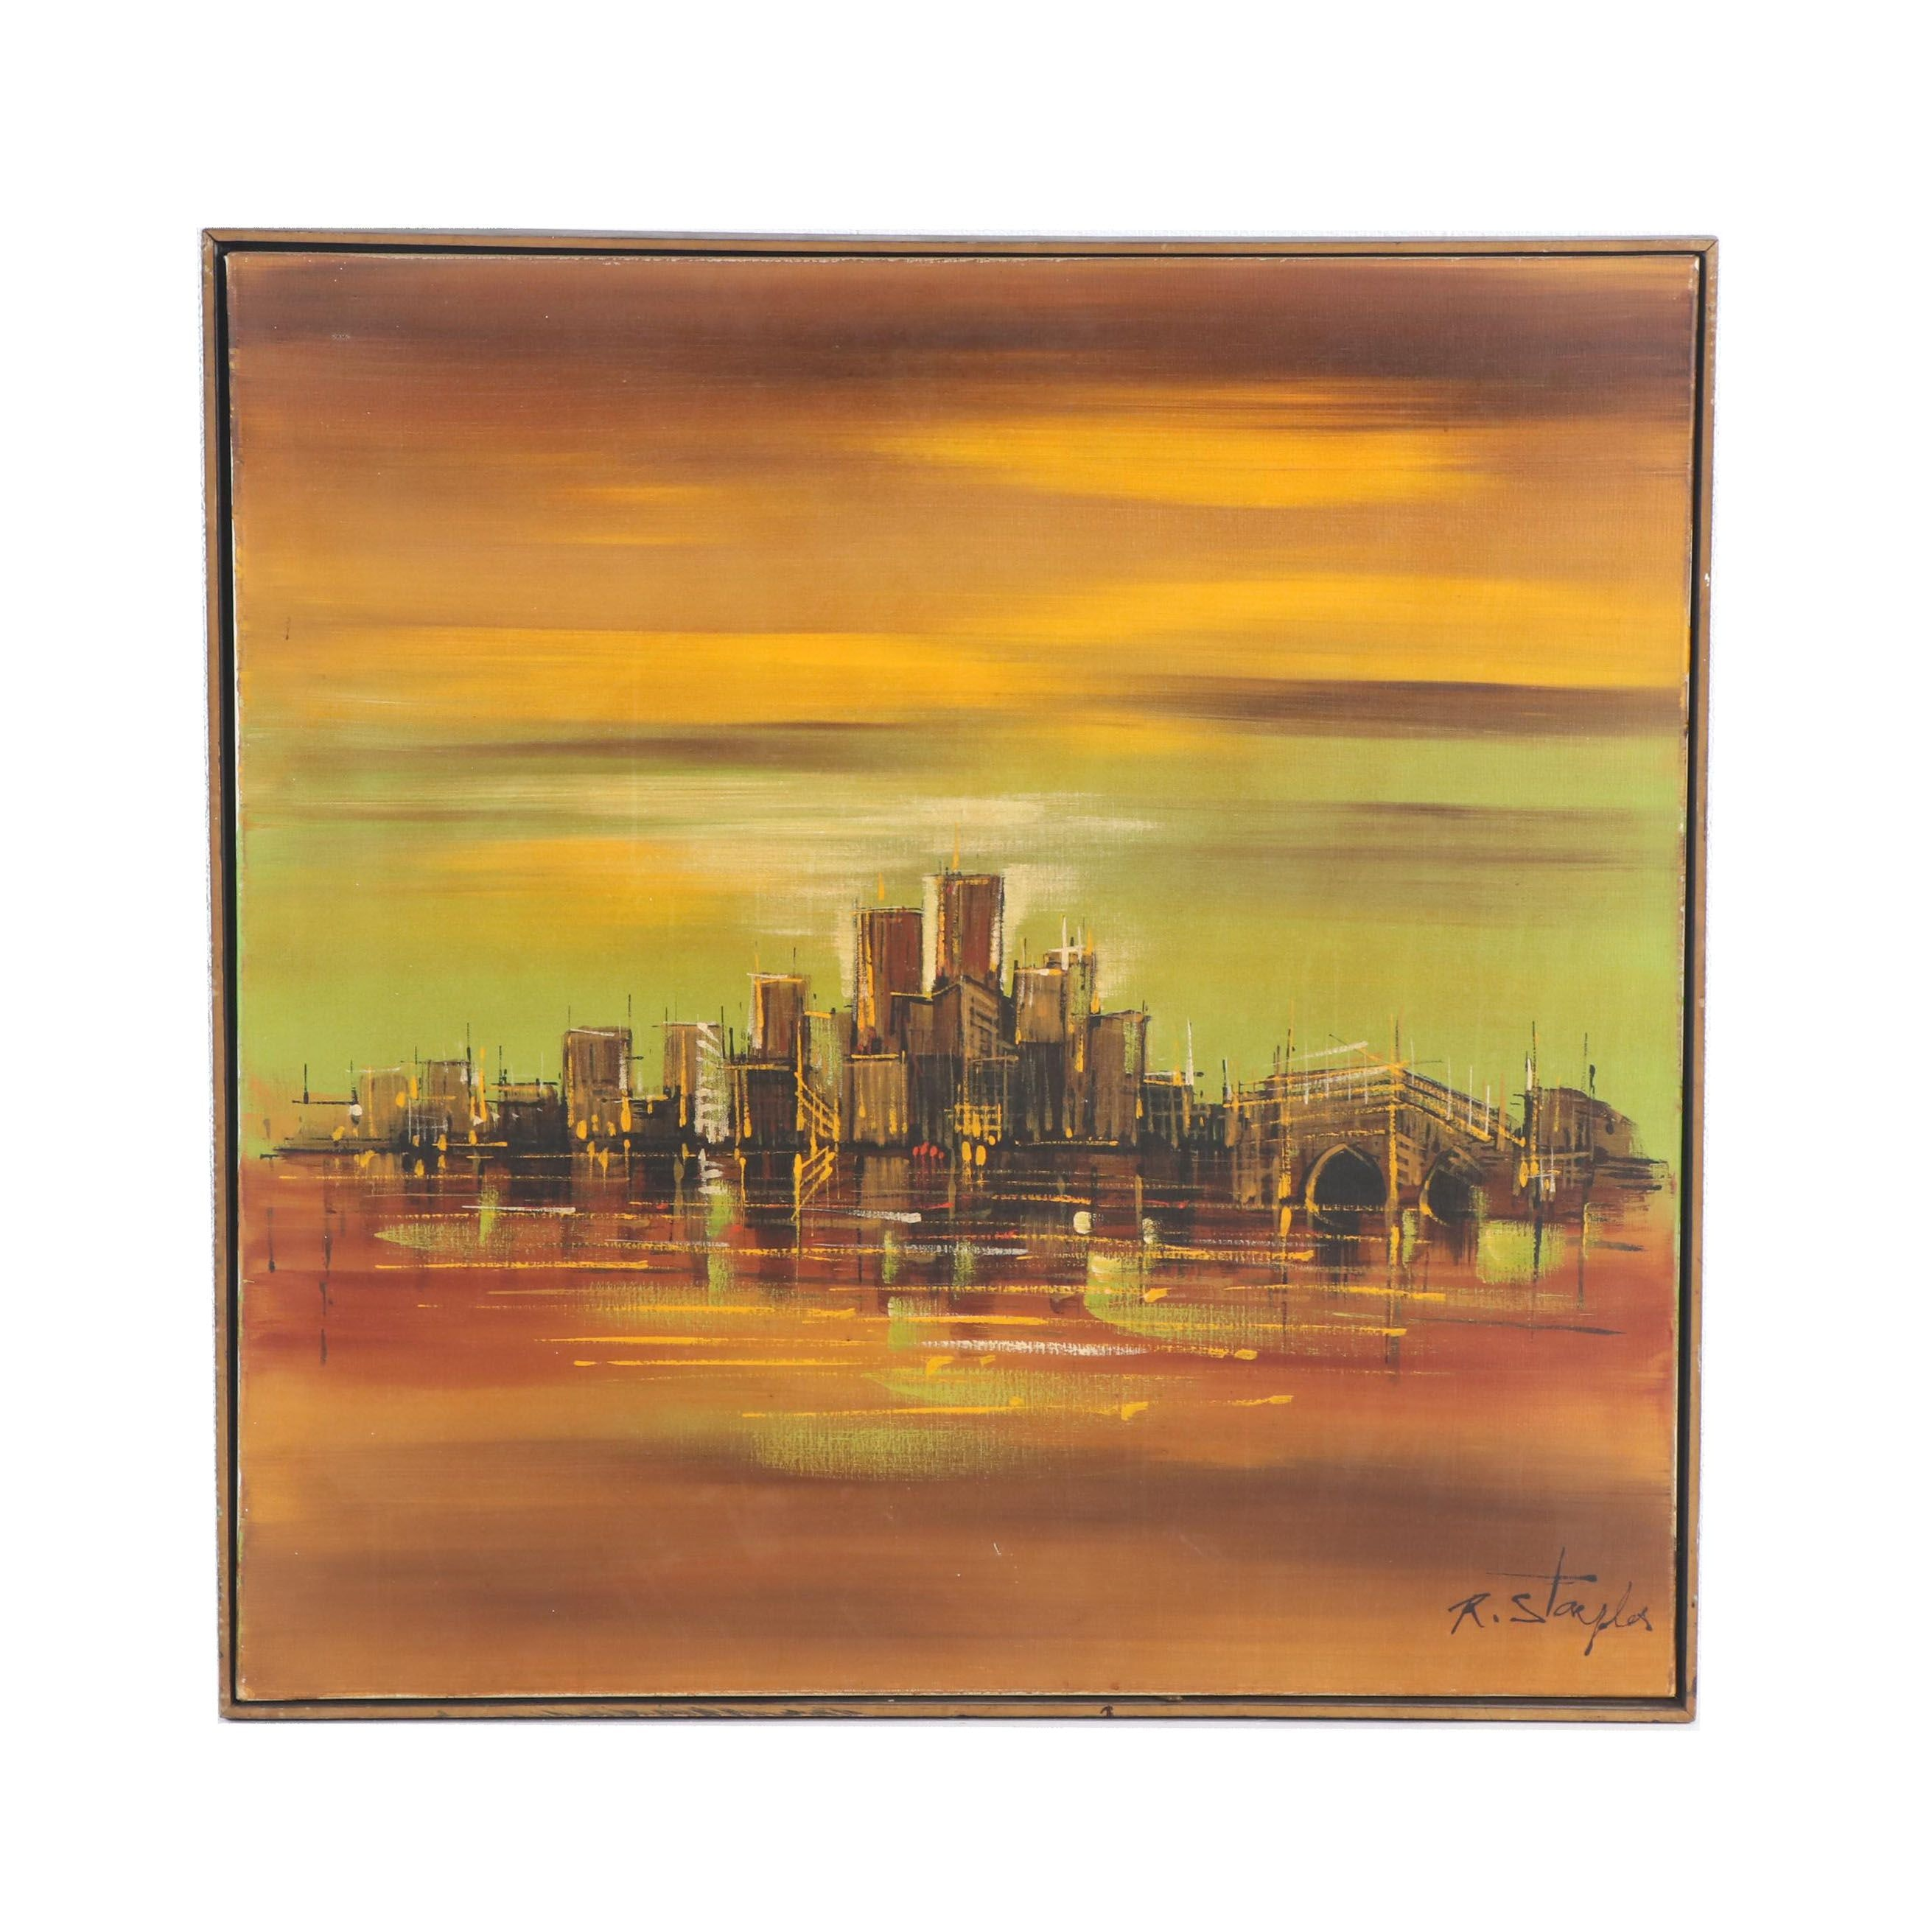 Acrylic Painting of City Skyline